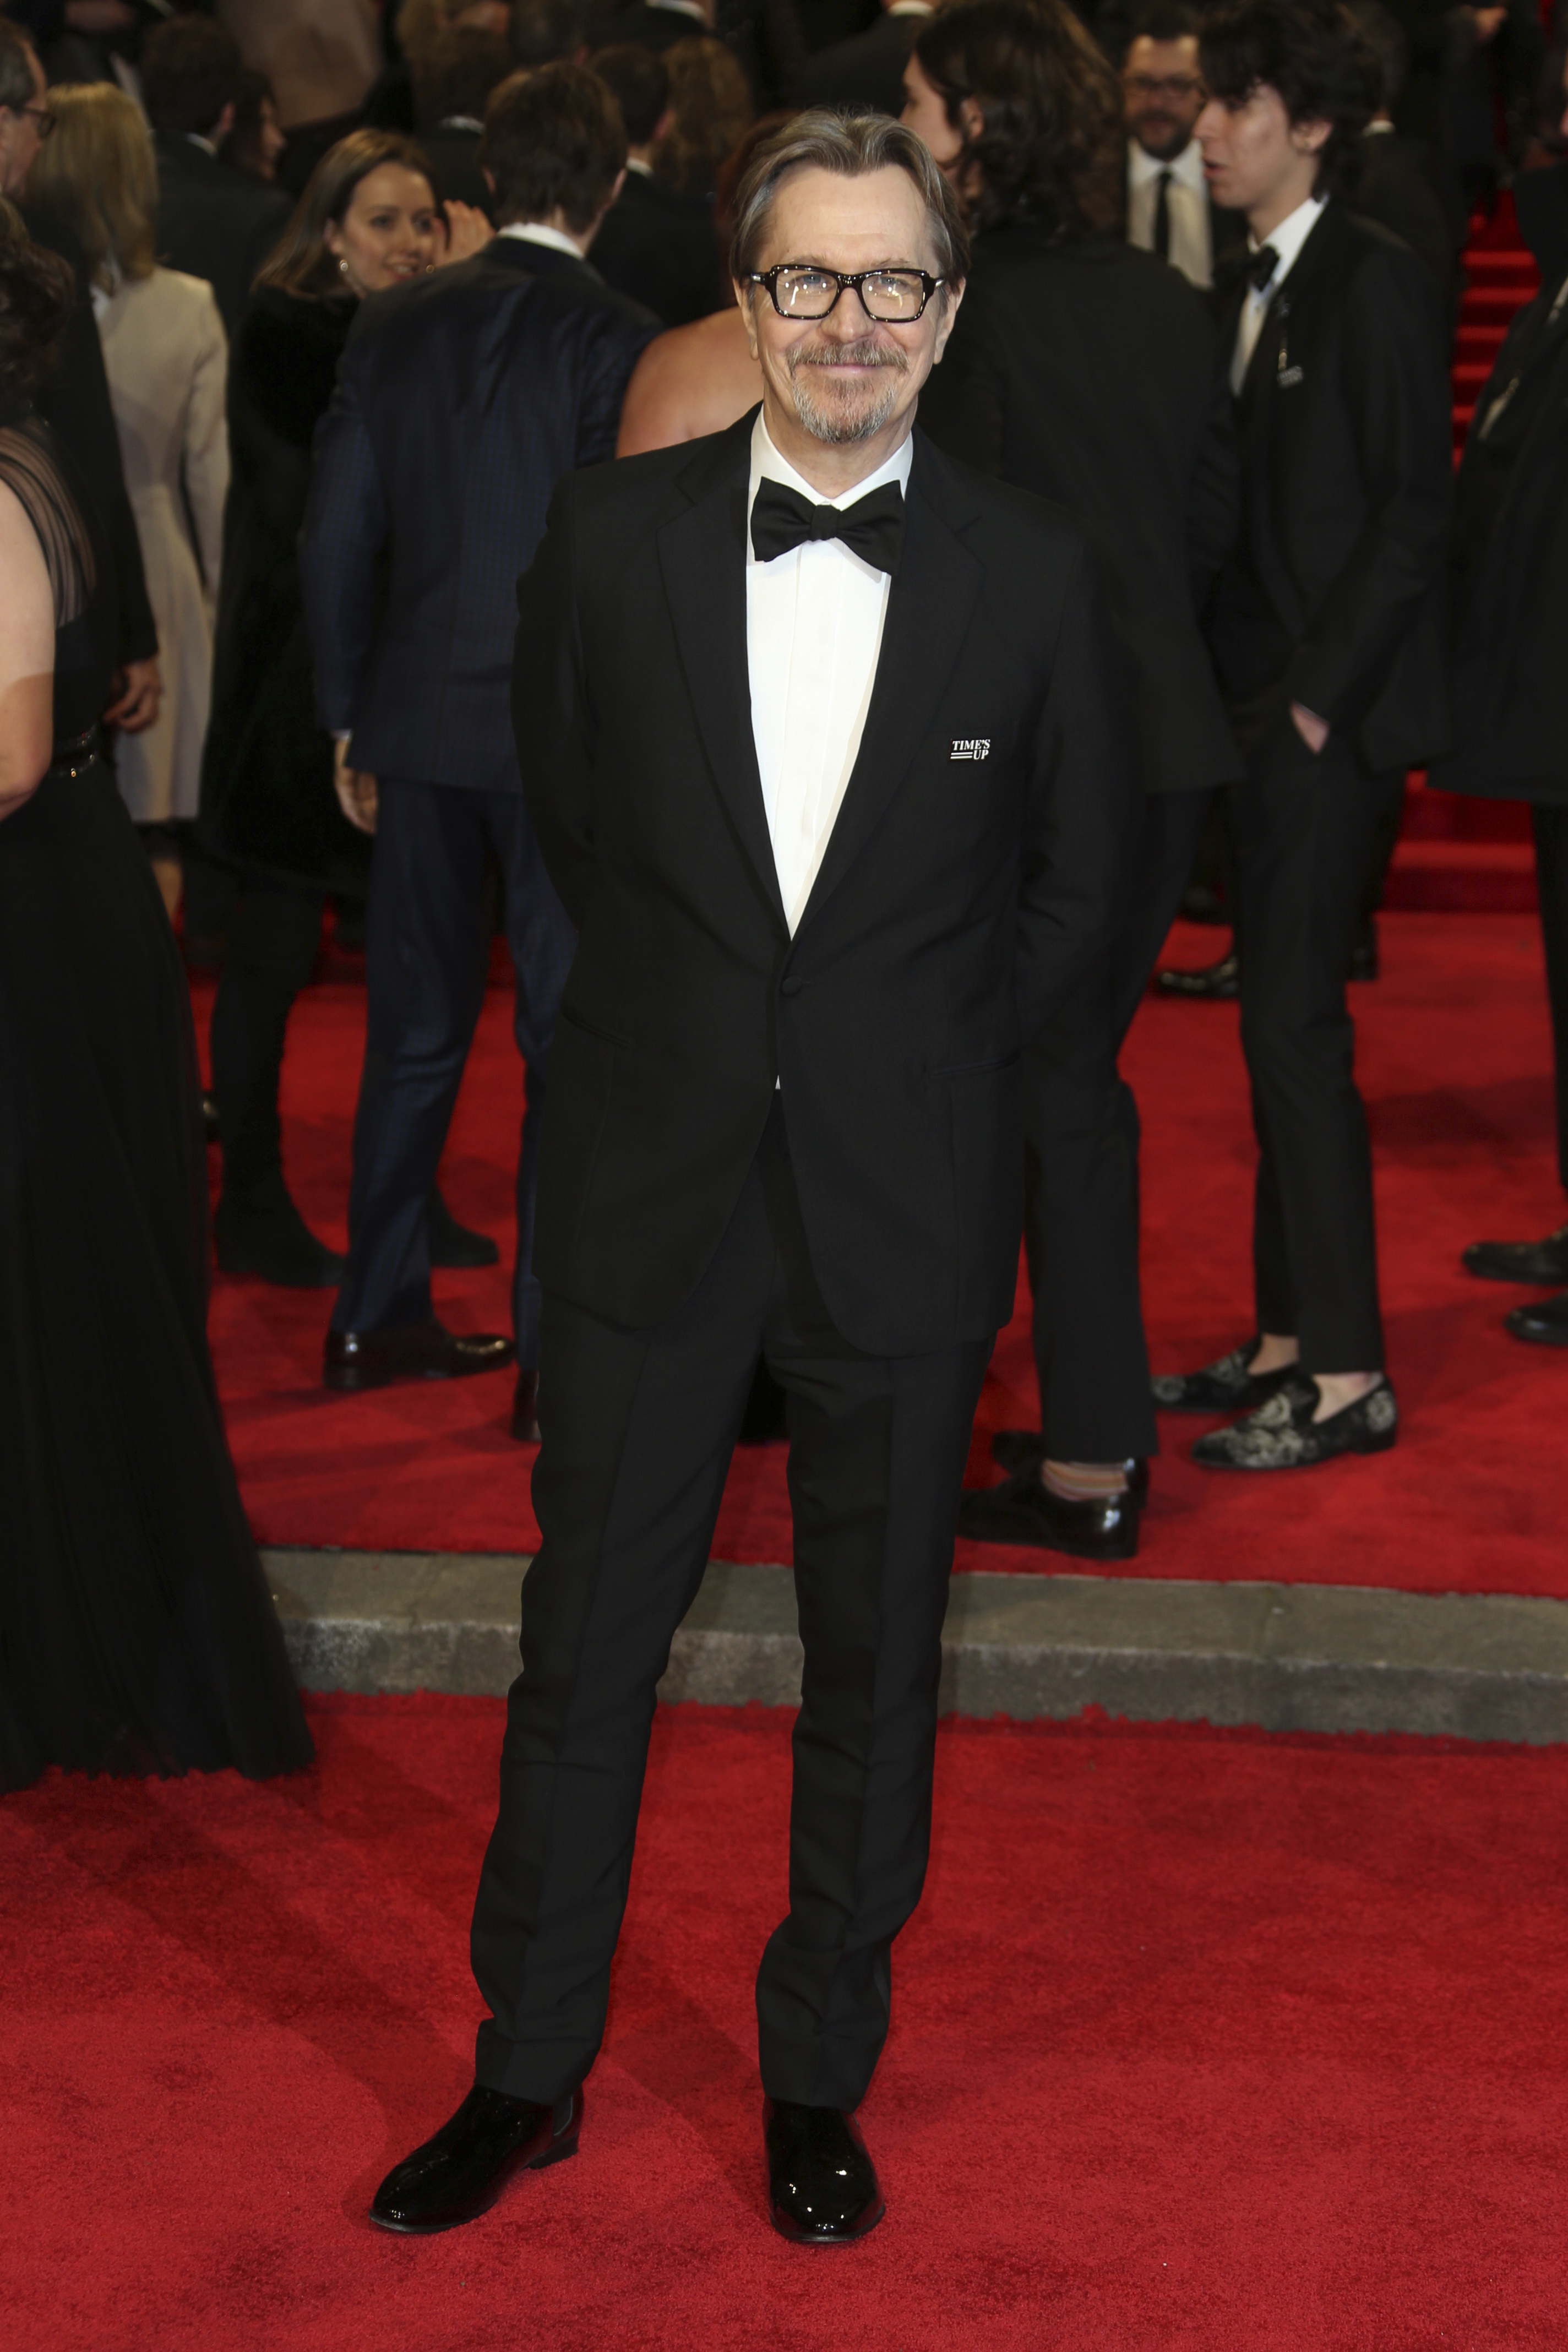 <div class='meta'><div class='origin-logo' data-origin='AP'></div><span class='caption-text' data-credit='Joel C Ryan/Invision/AP'>Actor Gary Oldman poses for photographers upon arrival at the BAFTA 2018 Awards in London, Sunday, Feb. 18, 2018.</span></div>